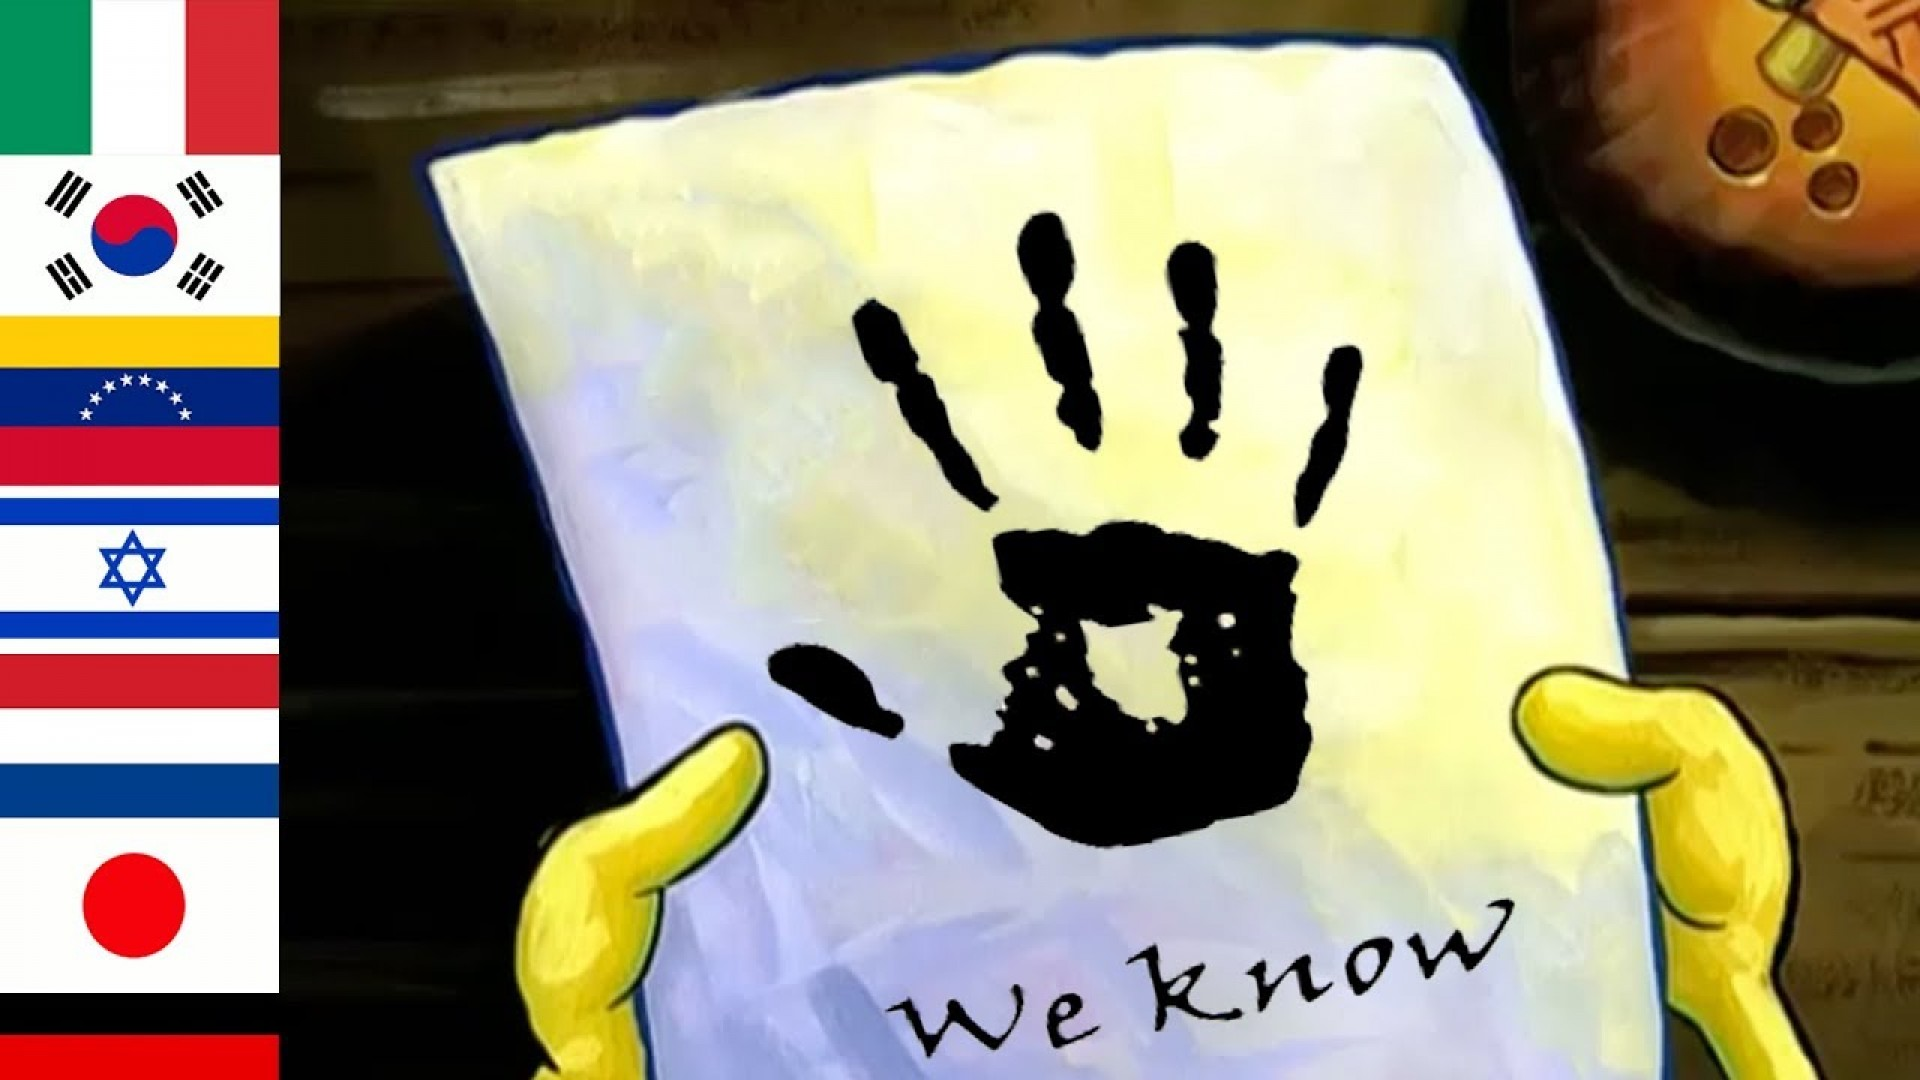 002 Essay Example Maxresdefault Spongebob Breathtaking The Episode Full Gif 1920